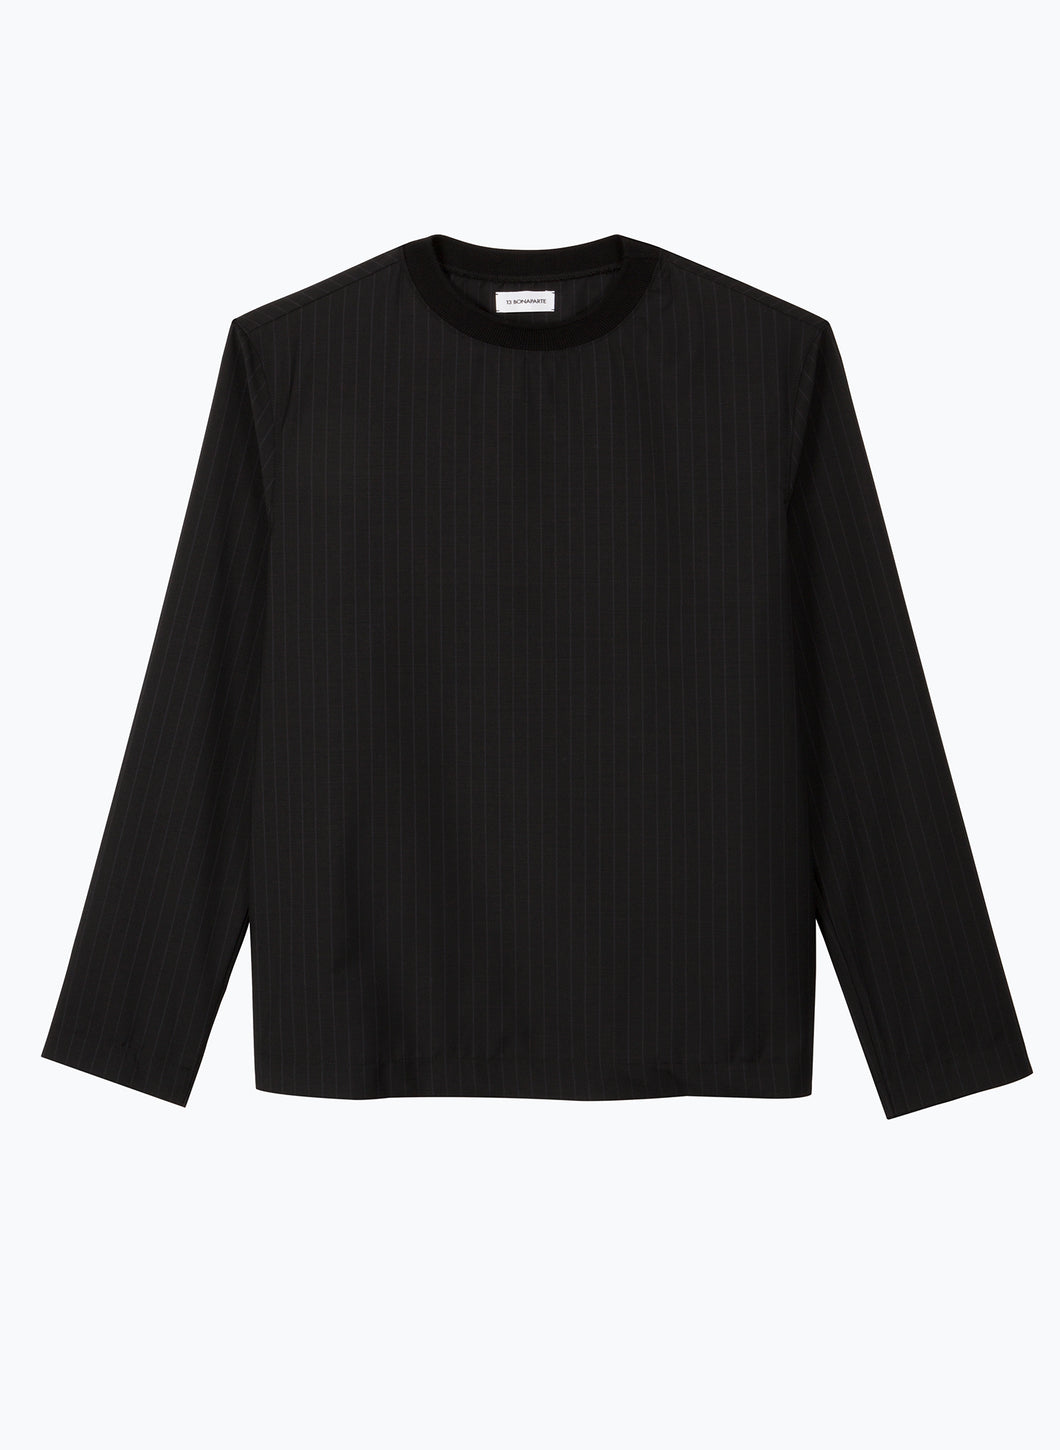 Long Sleeve T-Shirt with Edge-Ribbed Collar in Black Striped Cool Wool